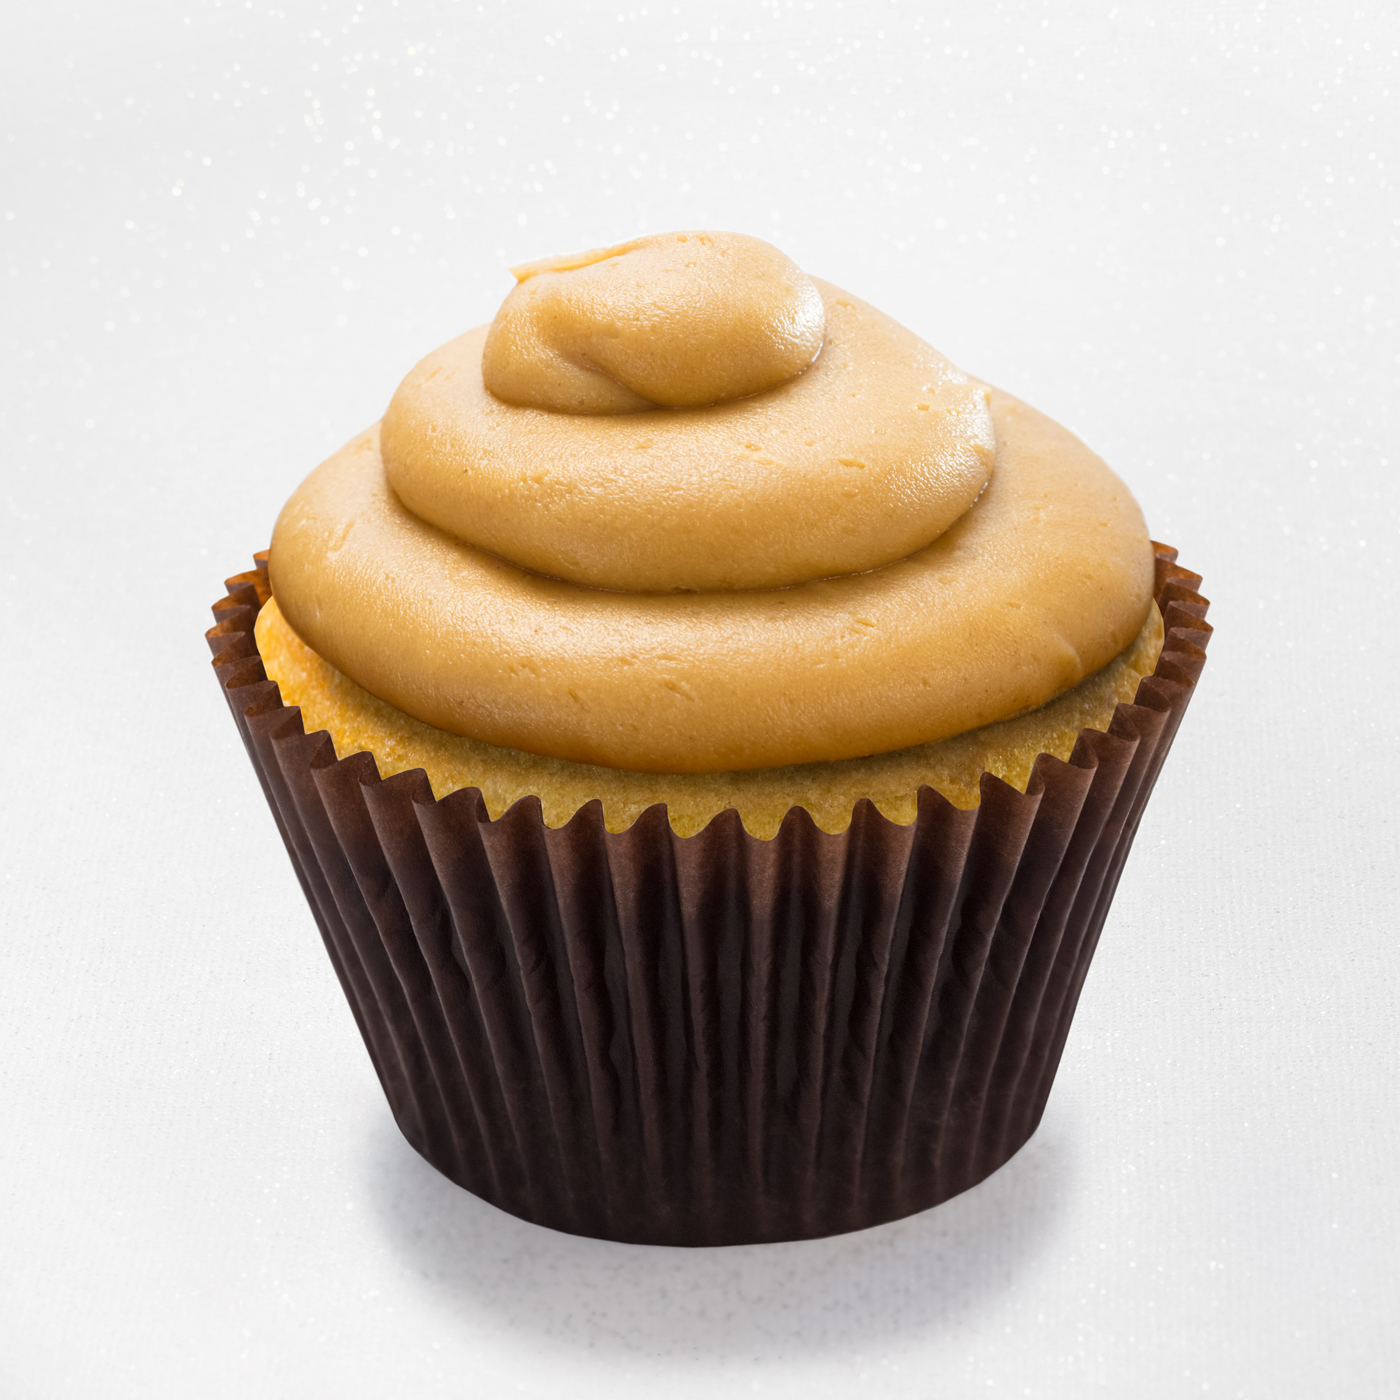 peanut butter cupcake with peanut butter mousse